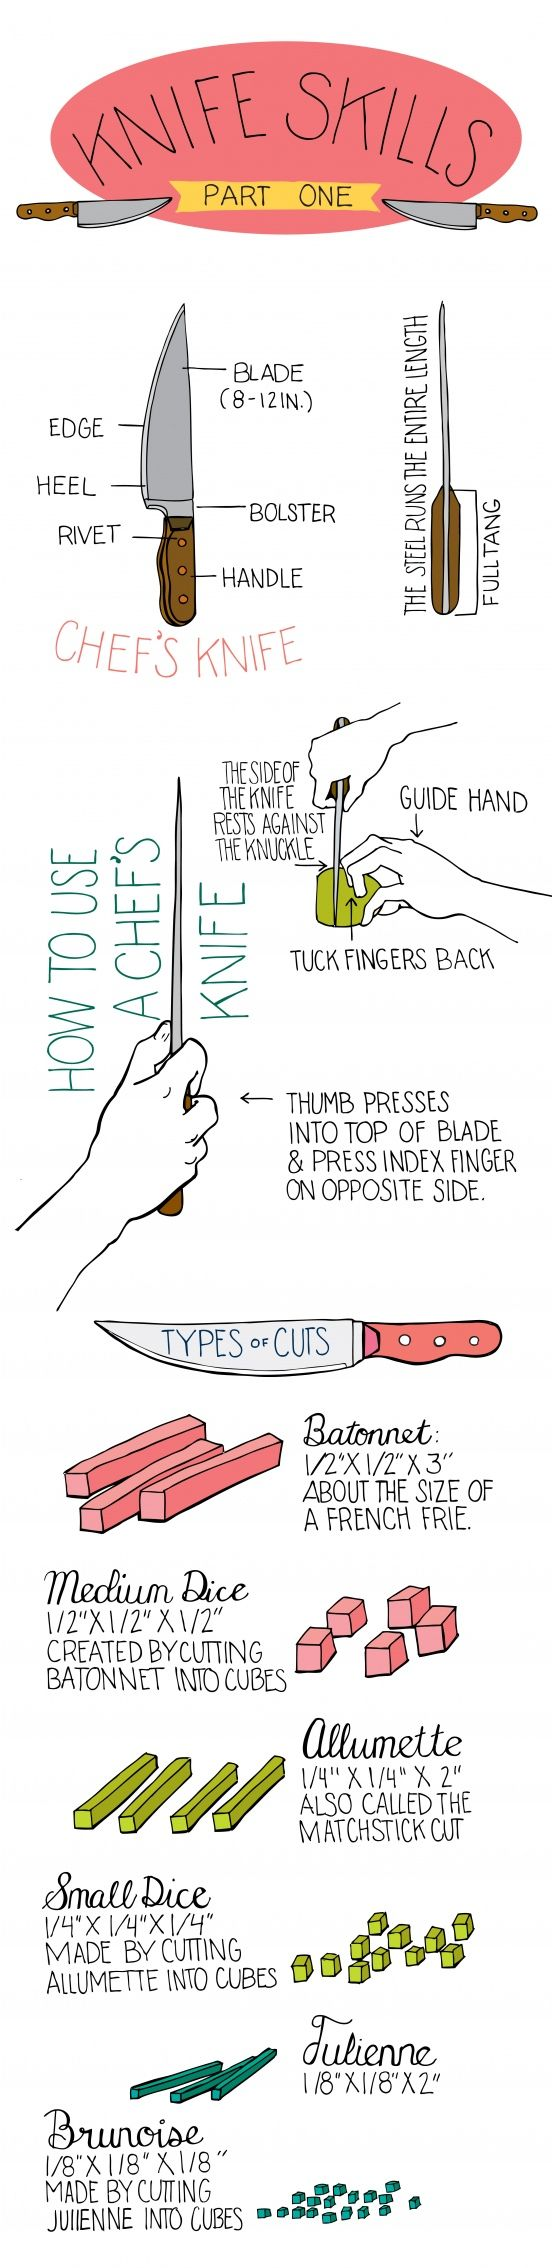 Chef knife skills - find out how big a Julienne is!